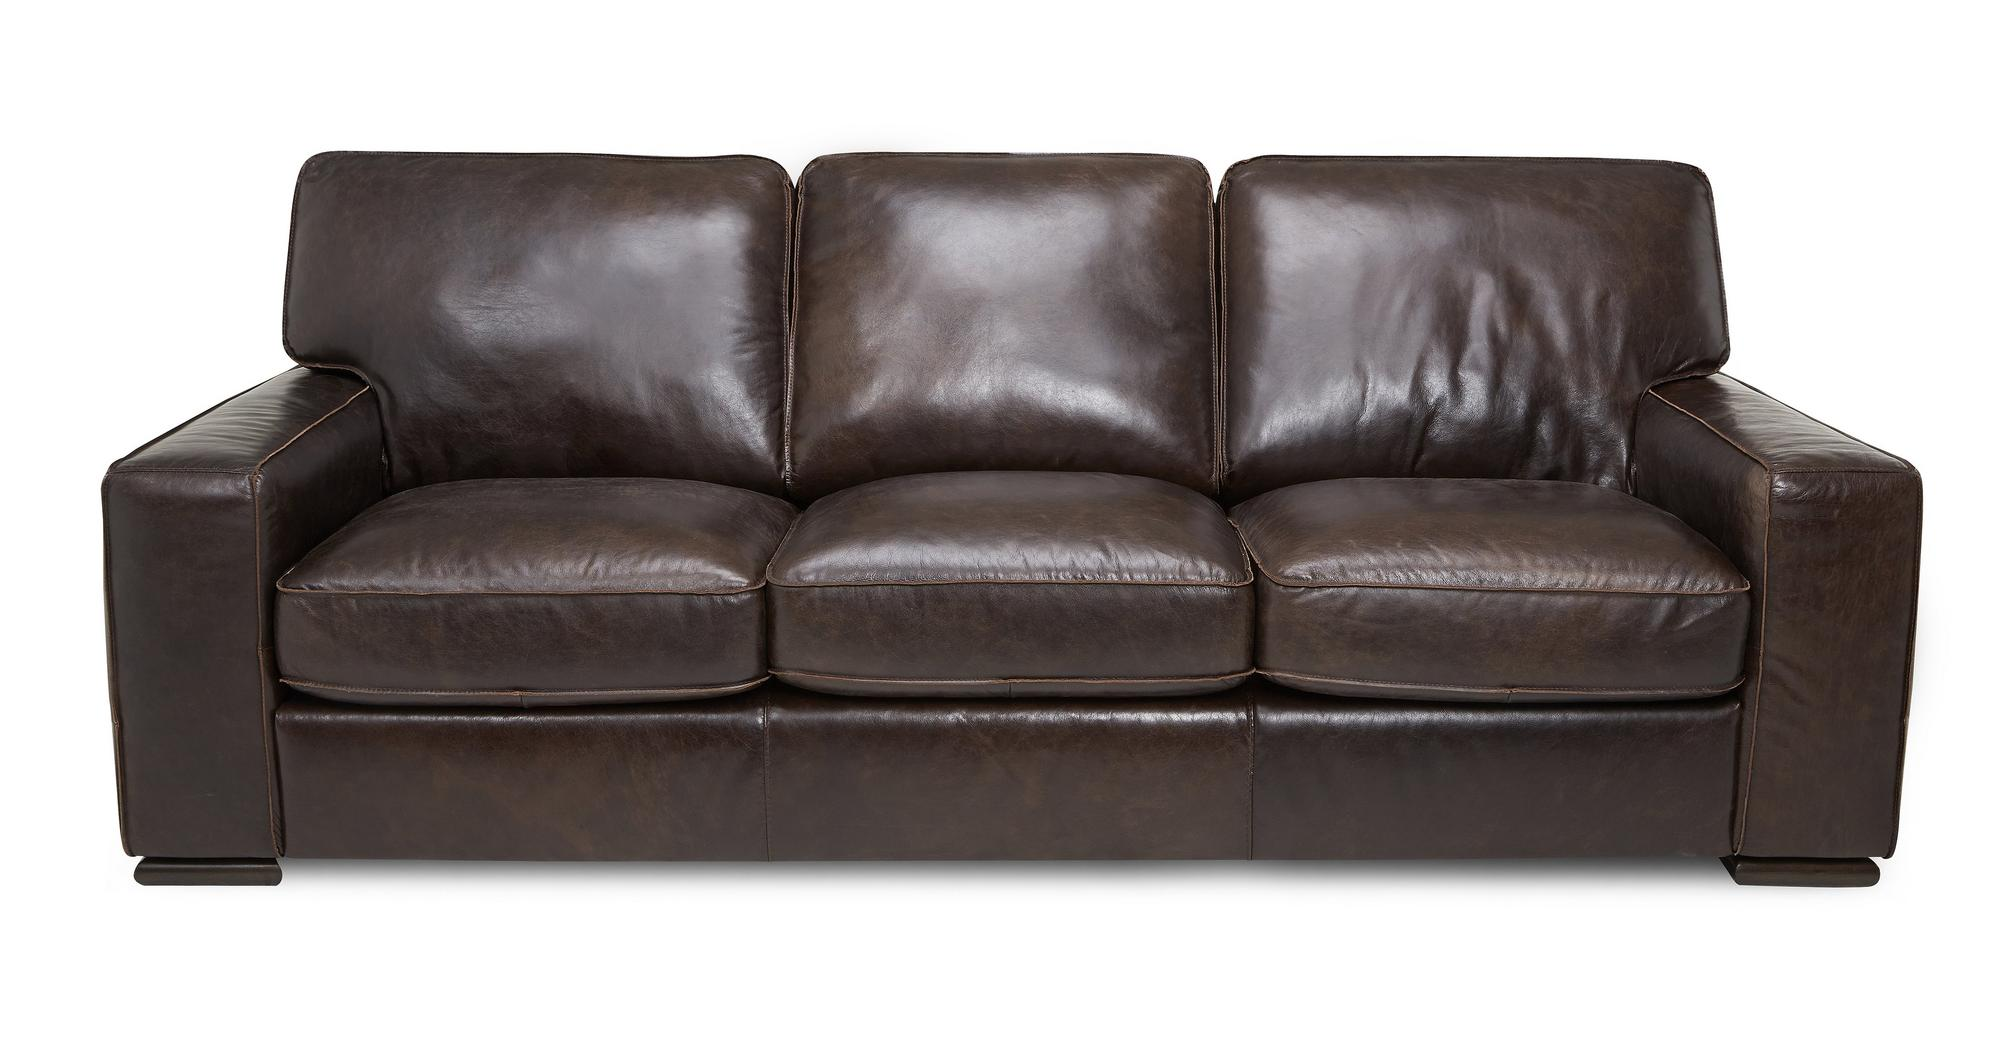 Dfs Rome Brown Natural 100 Leather 3 Seater Sofa Ebay